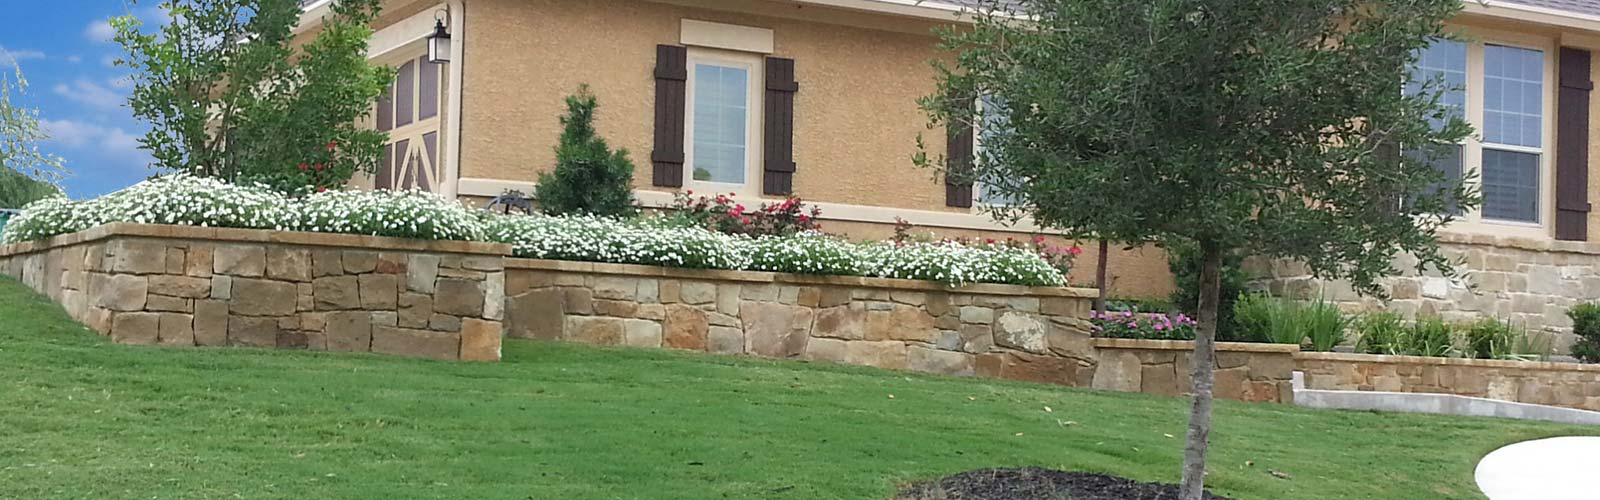 we have combined our years of landscaping experience and knowledge to provide our customers with the